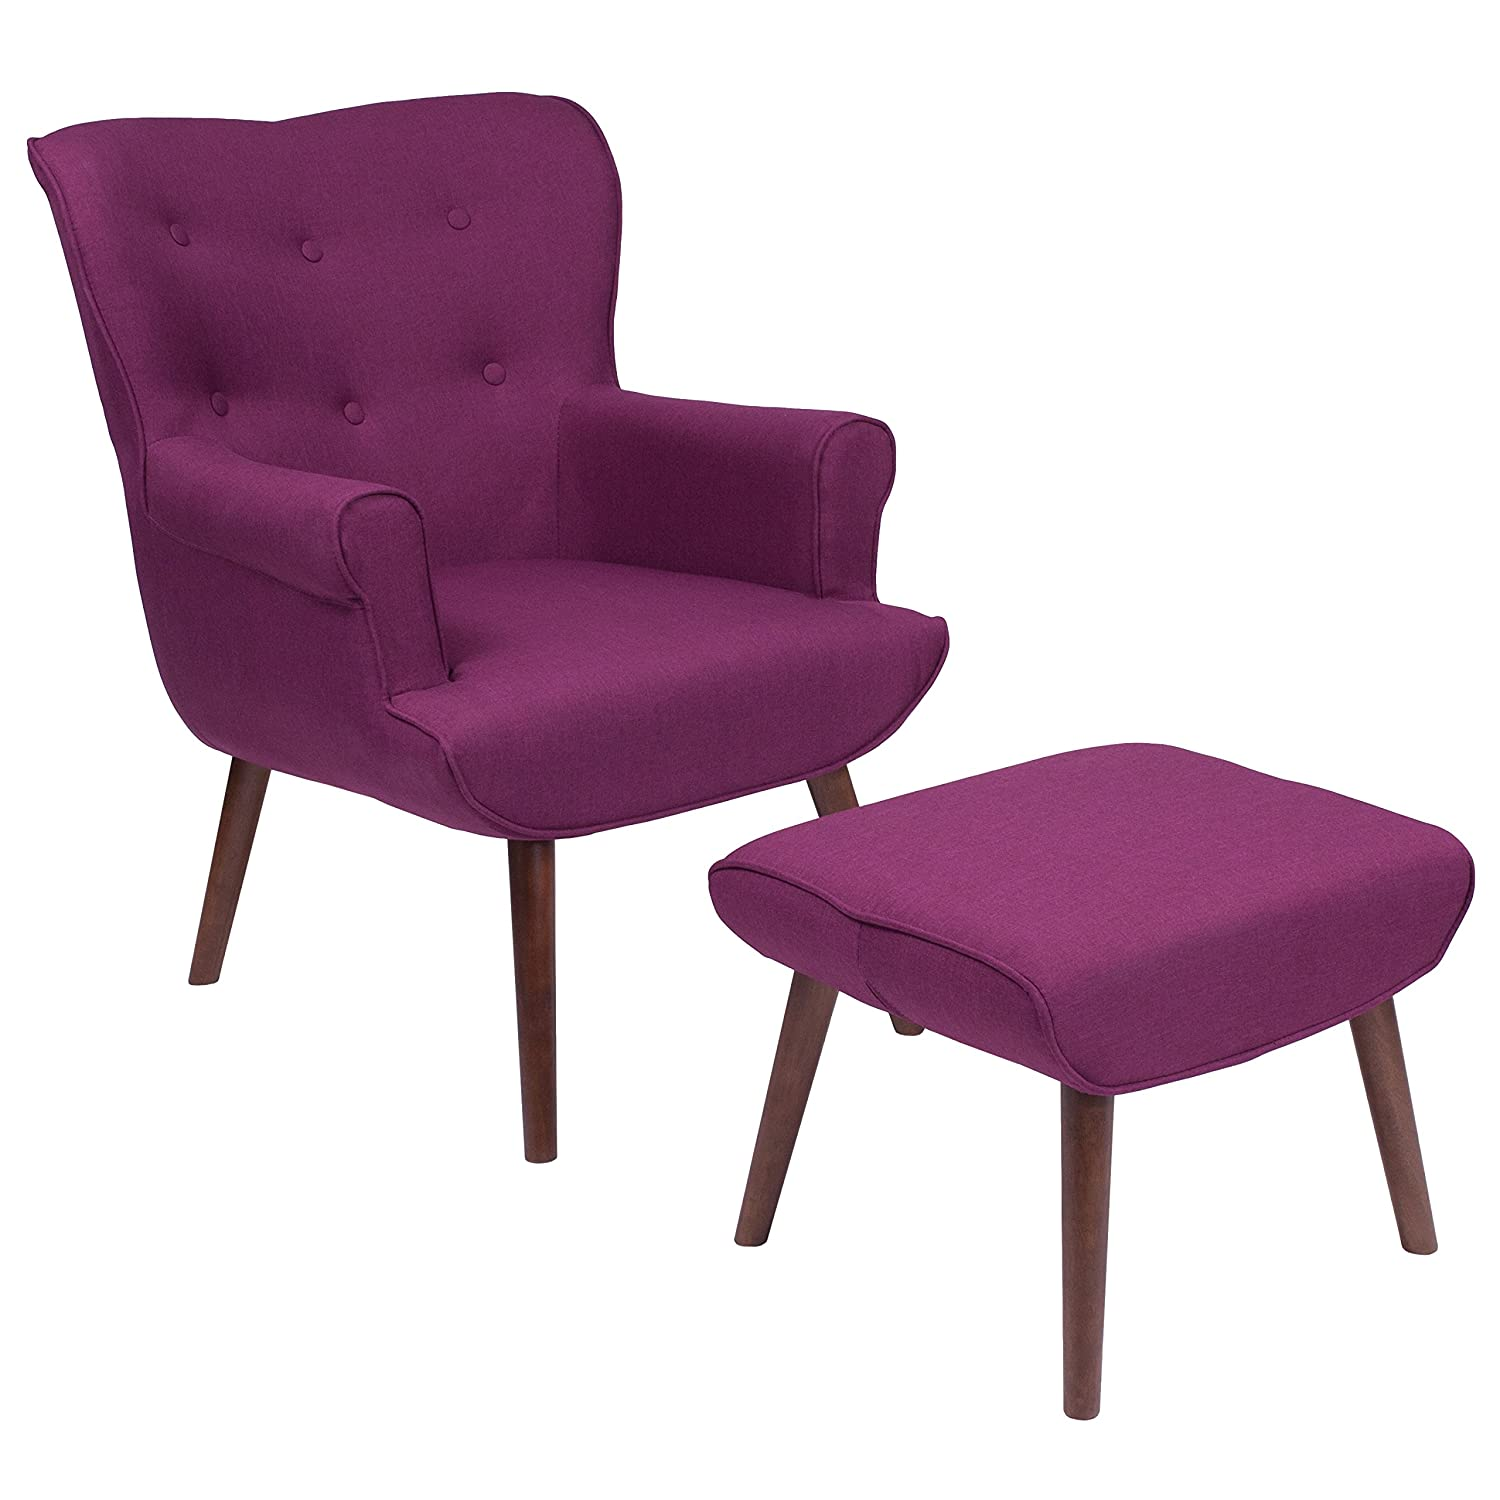 Amazon com flash furniture bayton upholstered wingback chair with ottoman in purple fabric kitchen dining